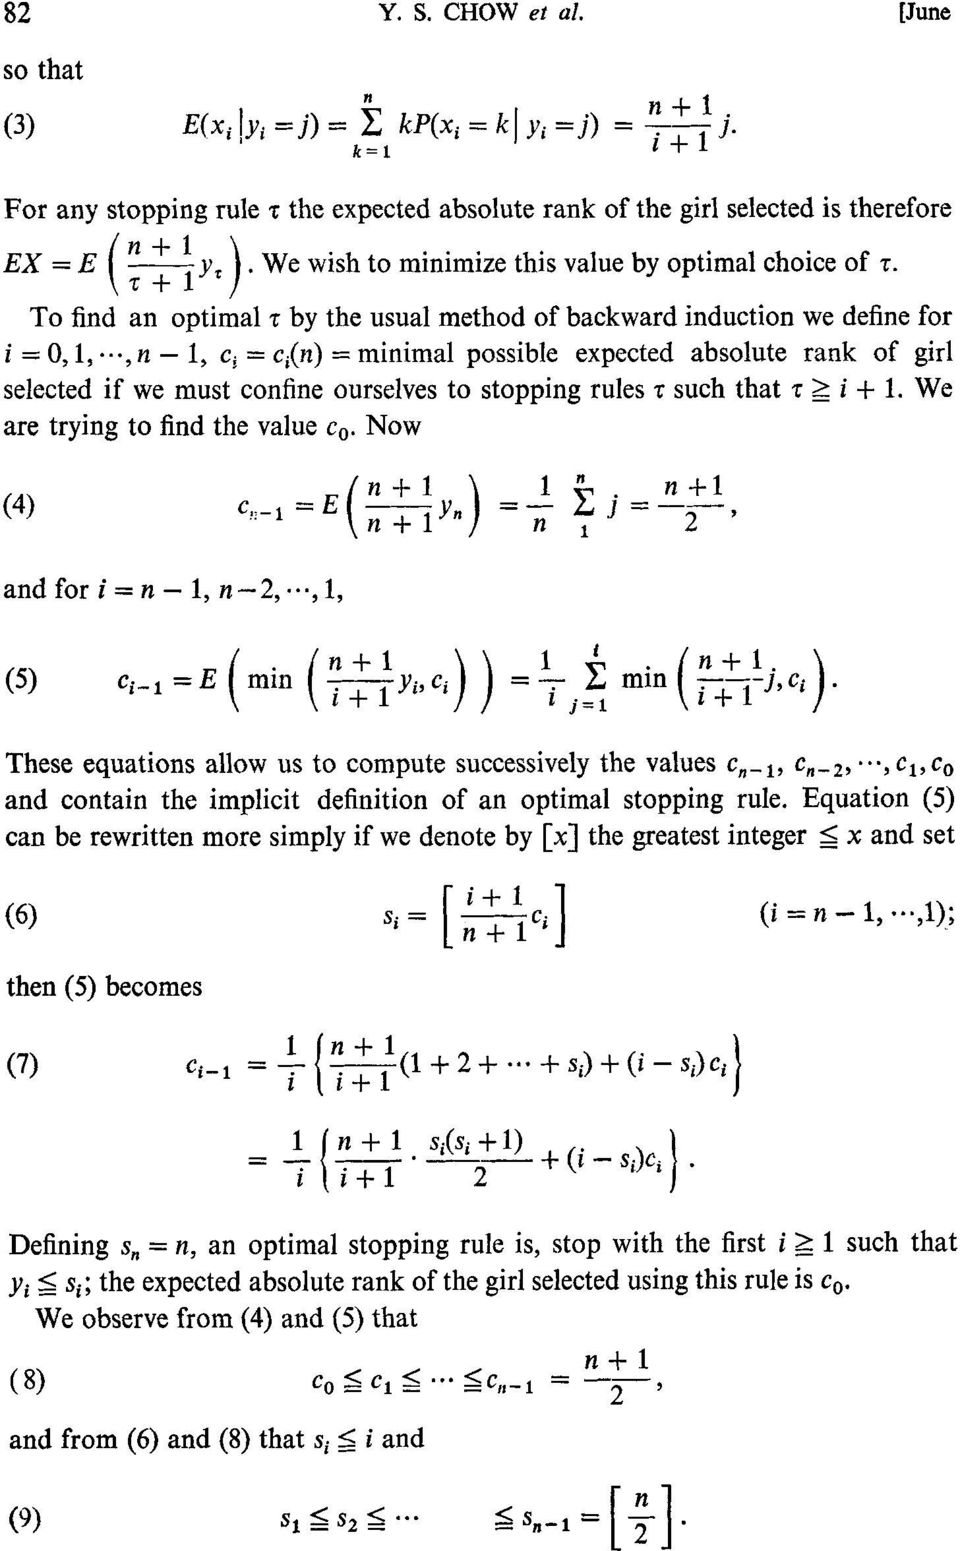 To find an optimal z by the usual method of backward induction we define for i= O, 1,.